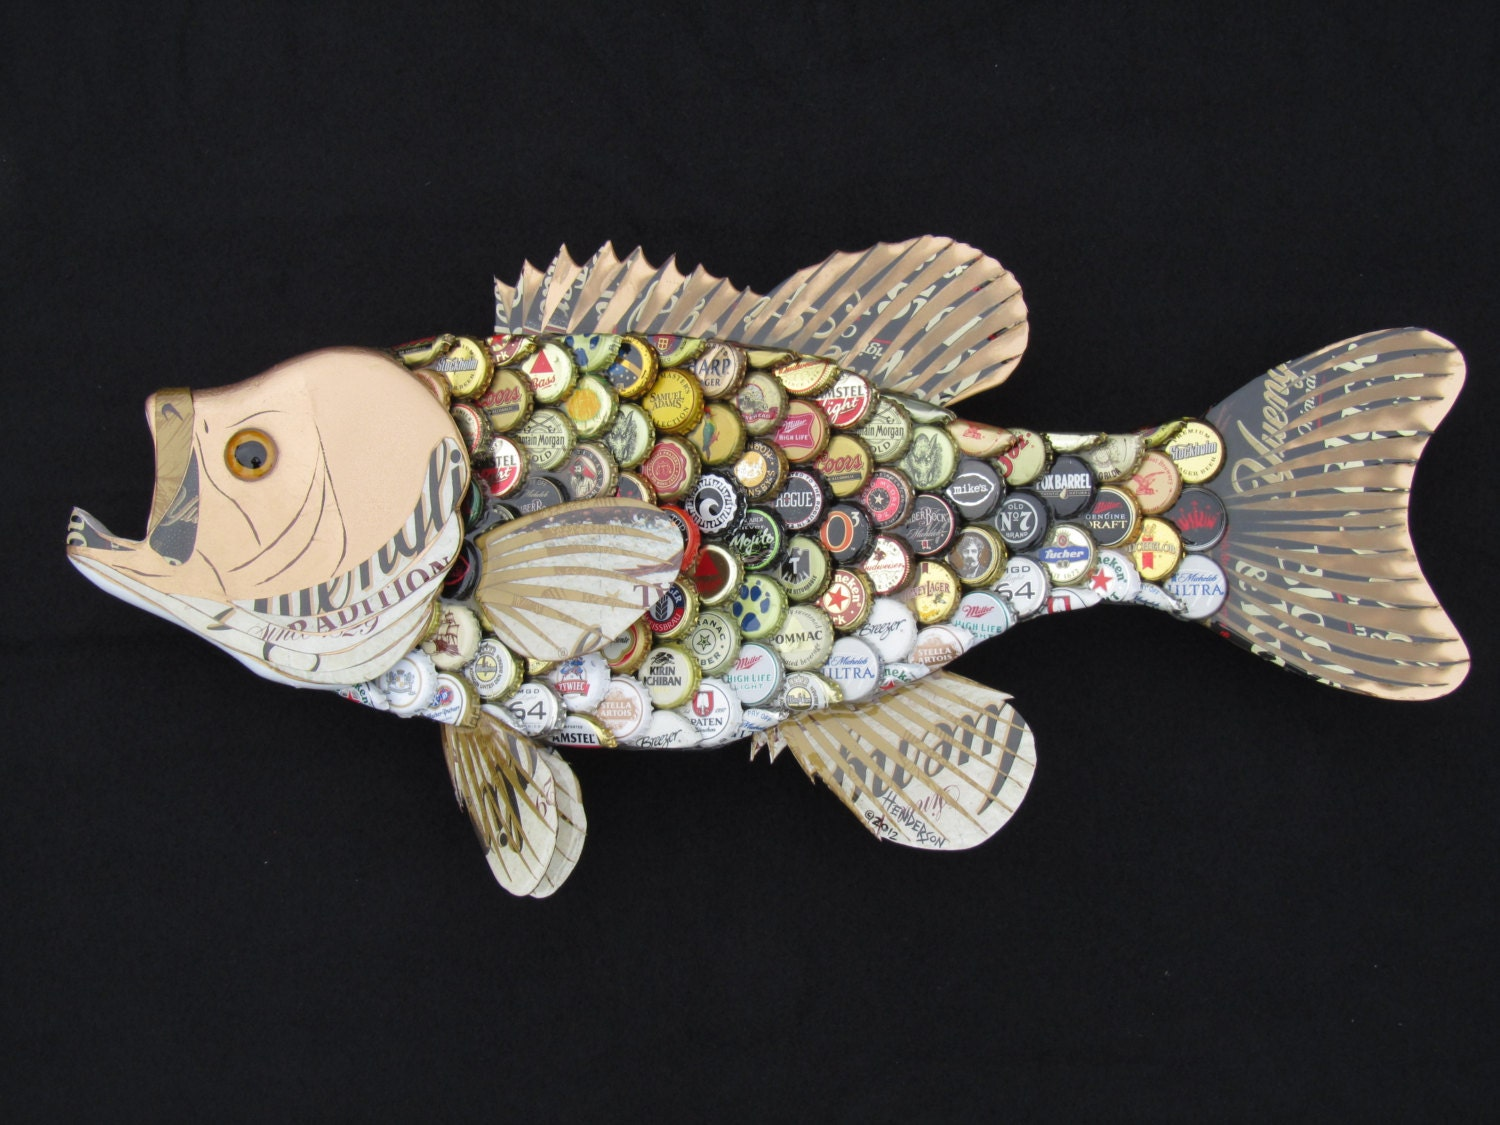 Metal bottle cap wall art large mouth bass by ericseasel for Bottle cap wall